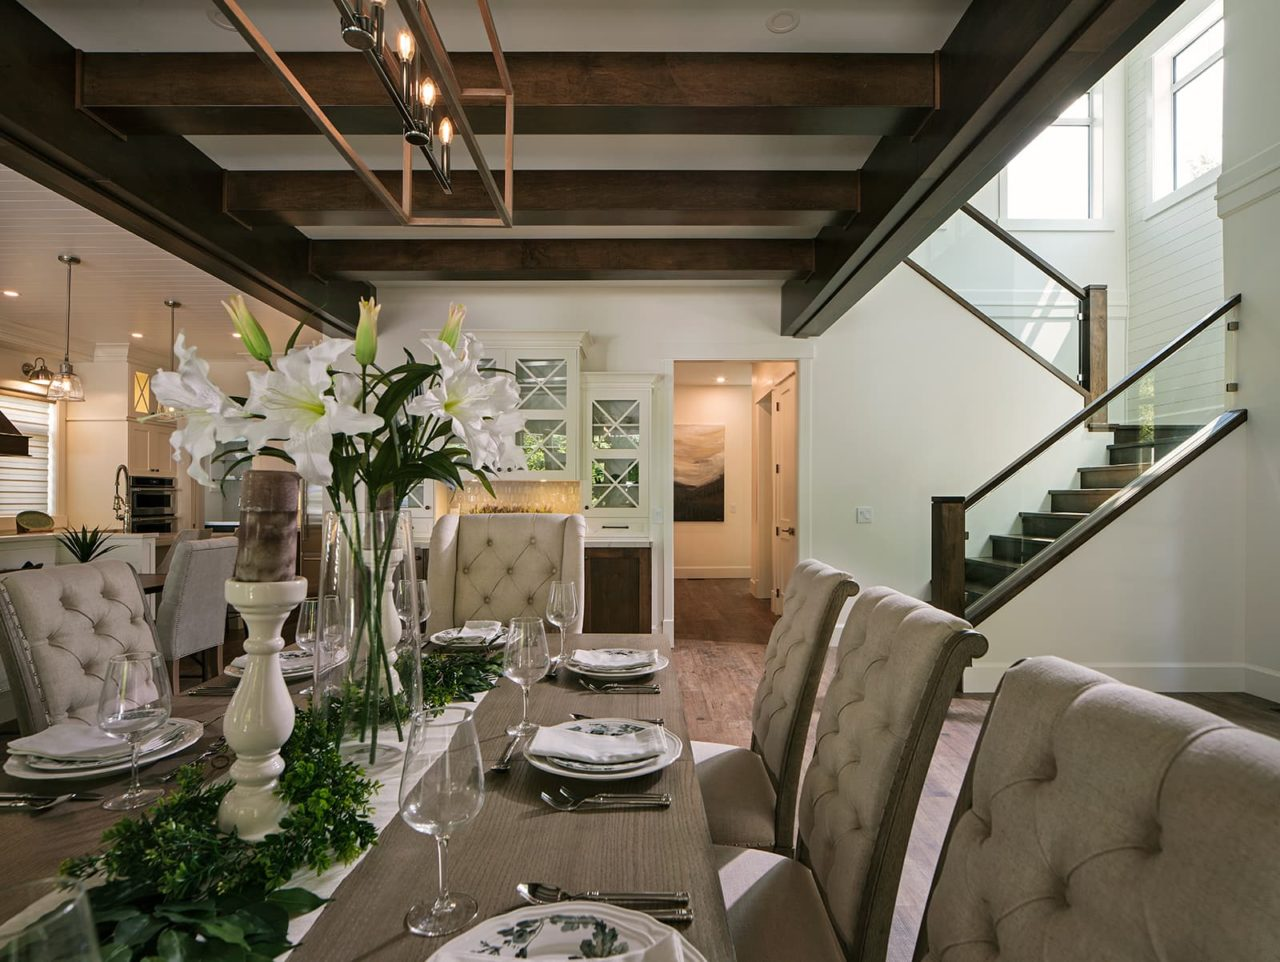 Freeport Industries PNE Prize Home 2019 Living Room Dining Room Stairs 1892